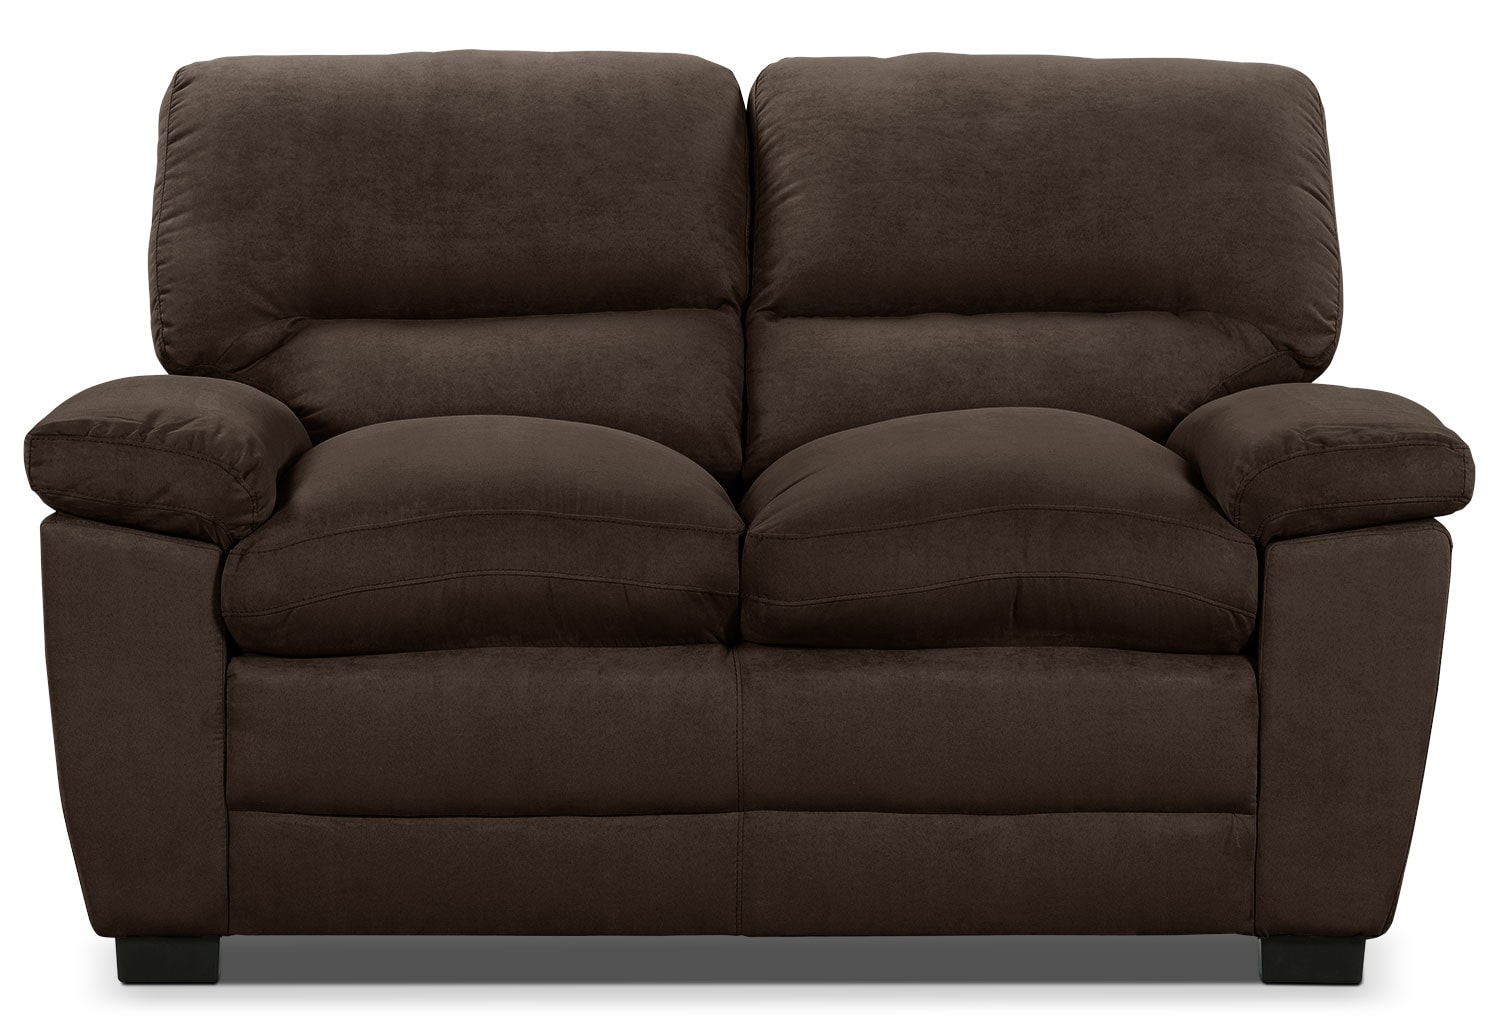 Living Room Furniture - Peyton Microsuede Loveseat - Chocolate